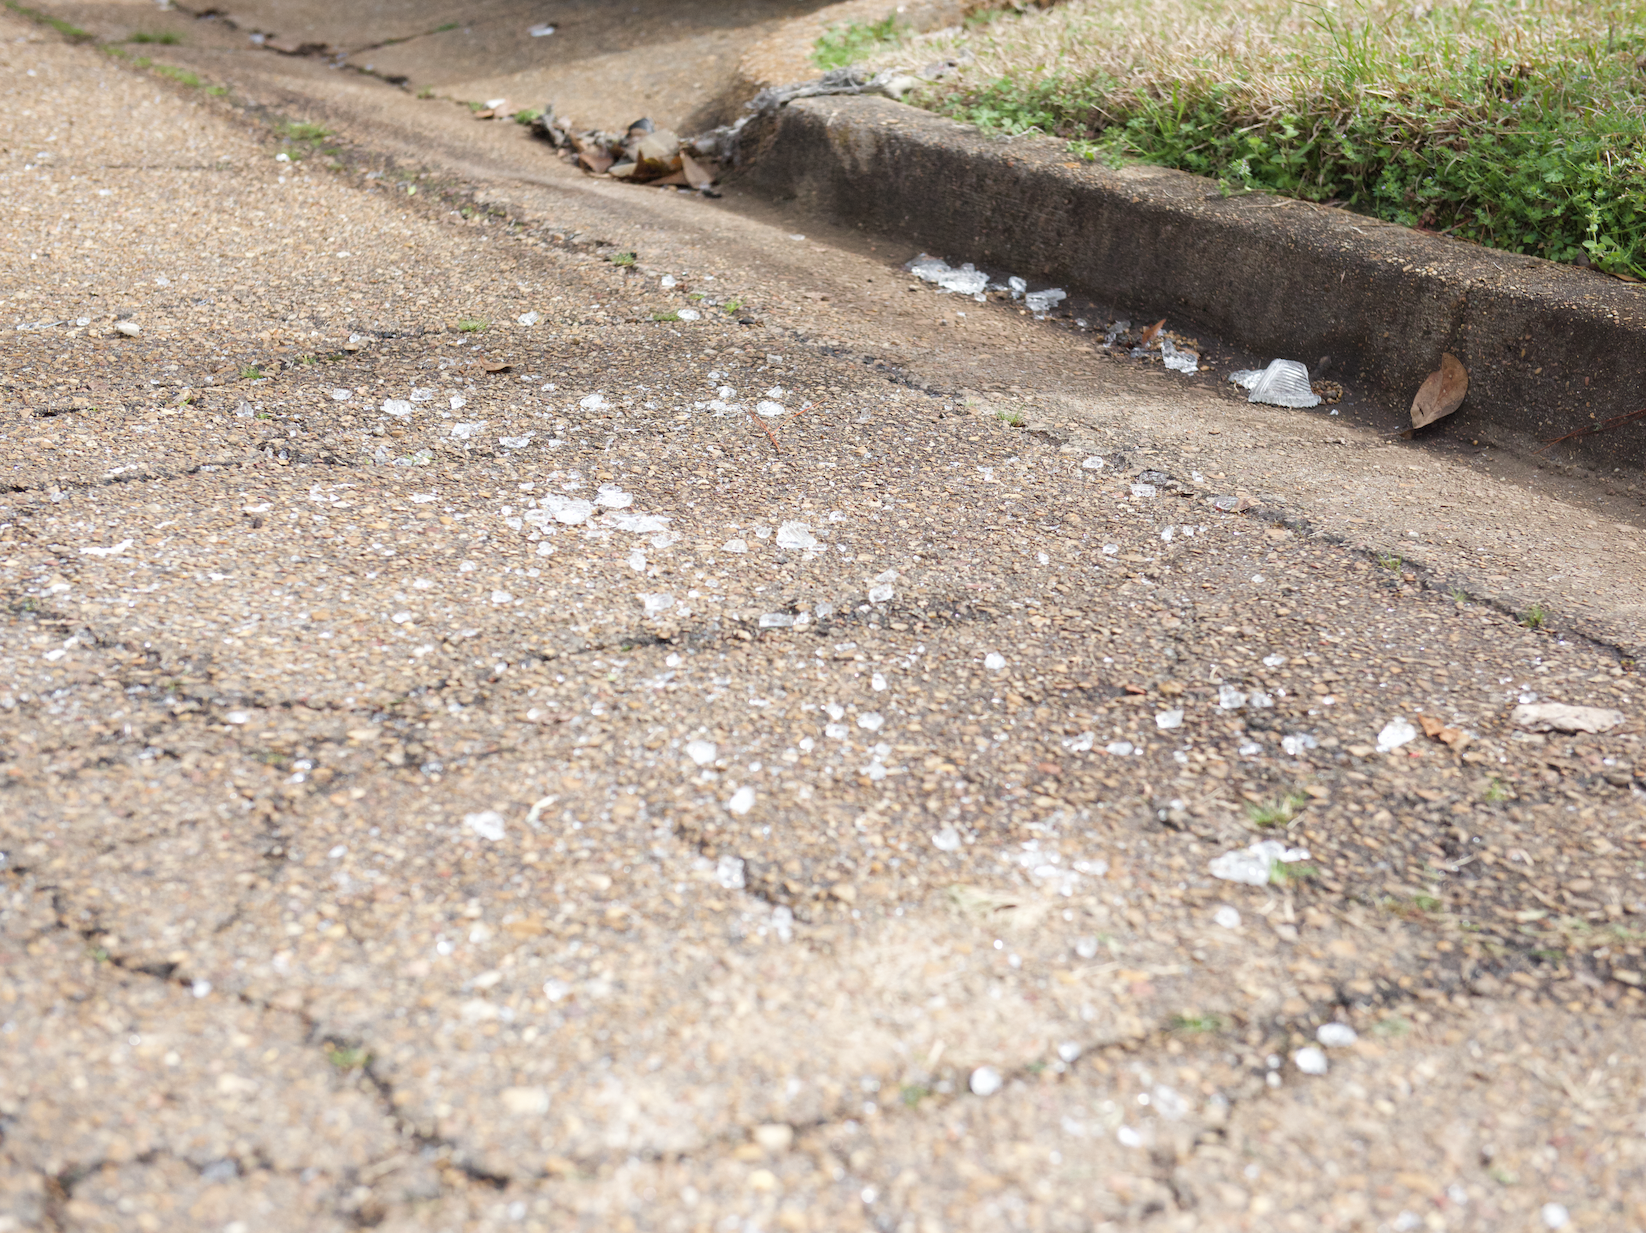 In this February 18, 2019, broken glass in front of a Clinton home, where four were found dead on Saturday, Feb. 16, 2019, after a long standoff with law enforcement.  A suspect, Nam Quang Le, 34, was shot and later died at a hospital.